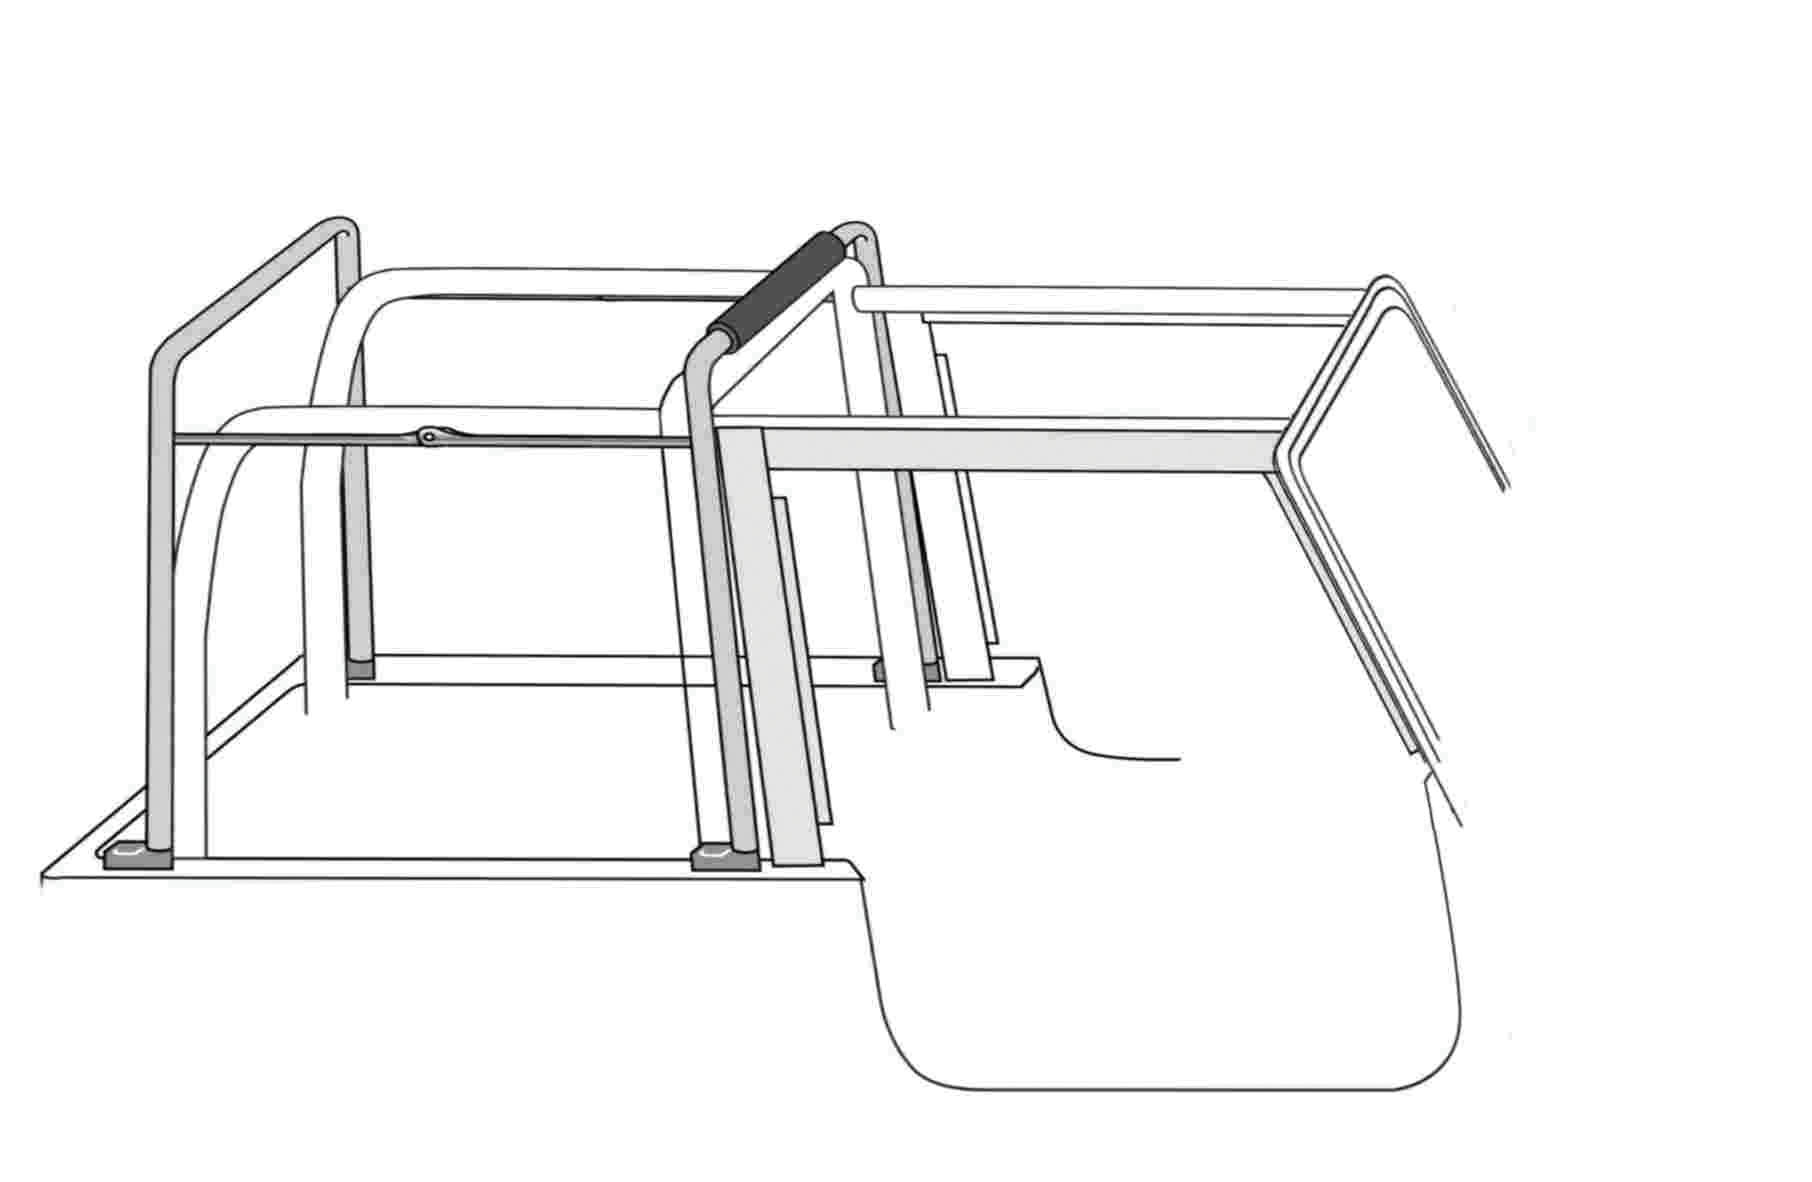 Cargo Train Colouring Pages likewise Printthread in addition Omega 34 63970 furthermore Rack Mount Lights together with Thule Cargo Carrier. on jeep cargo net top